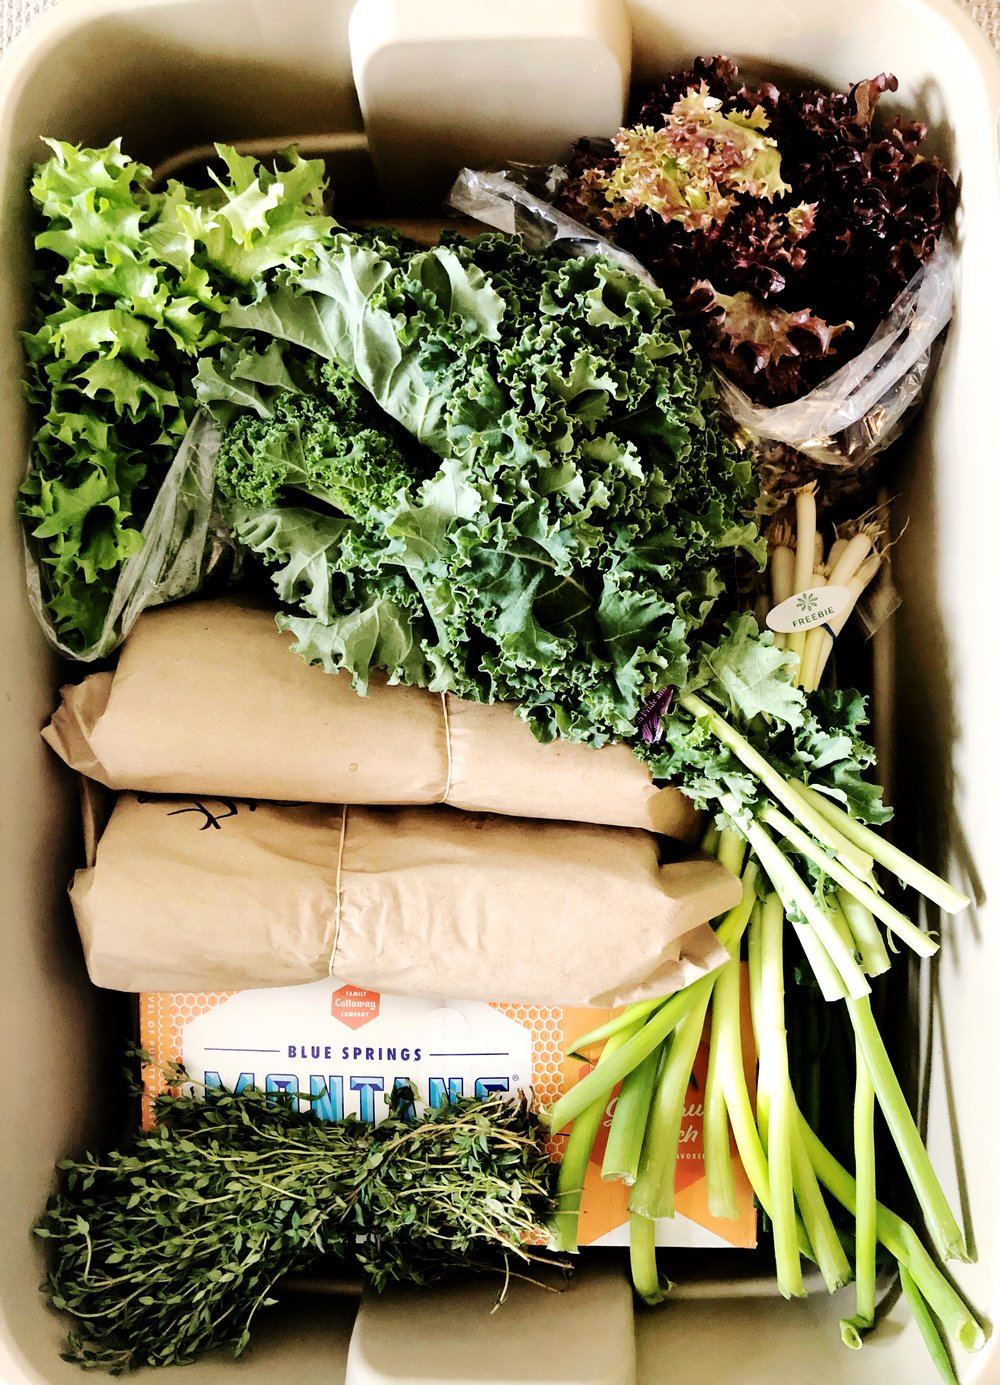 …But what do do with all those winter veggies? Photo: jessgraves.com